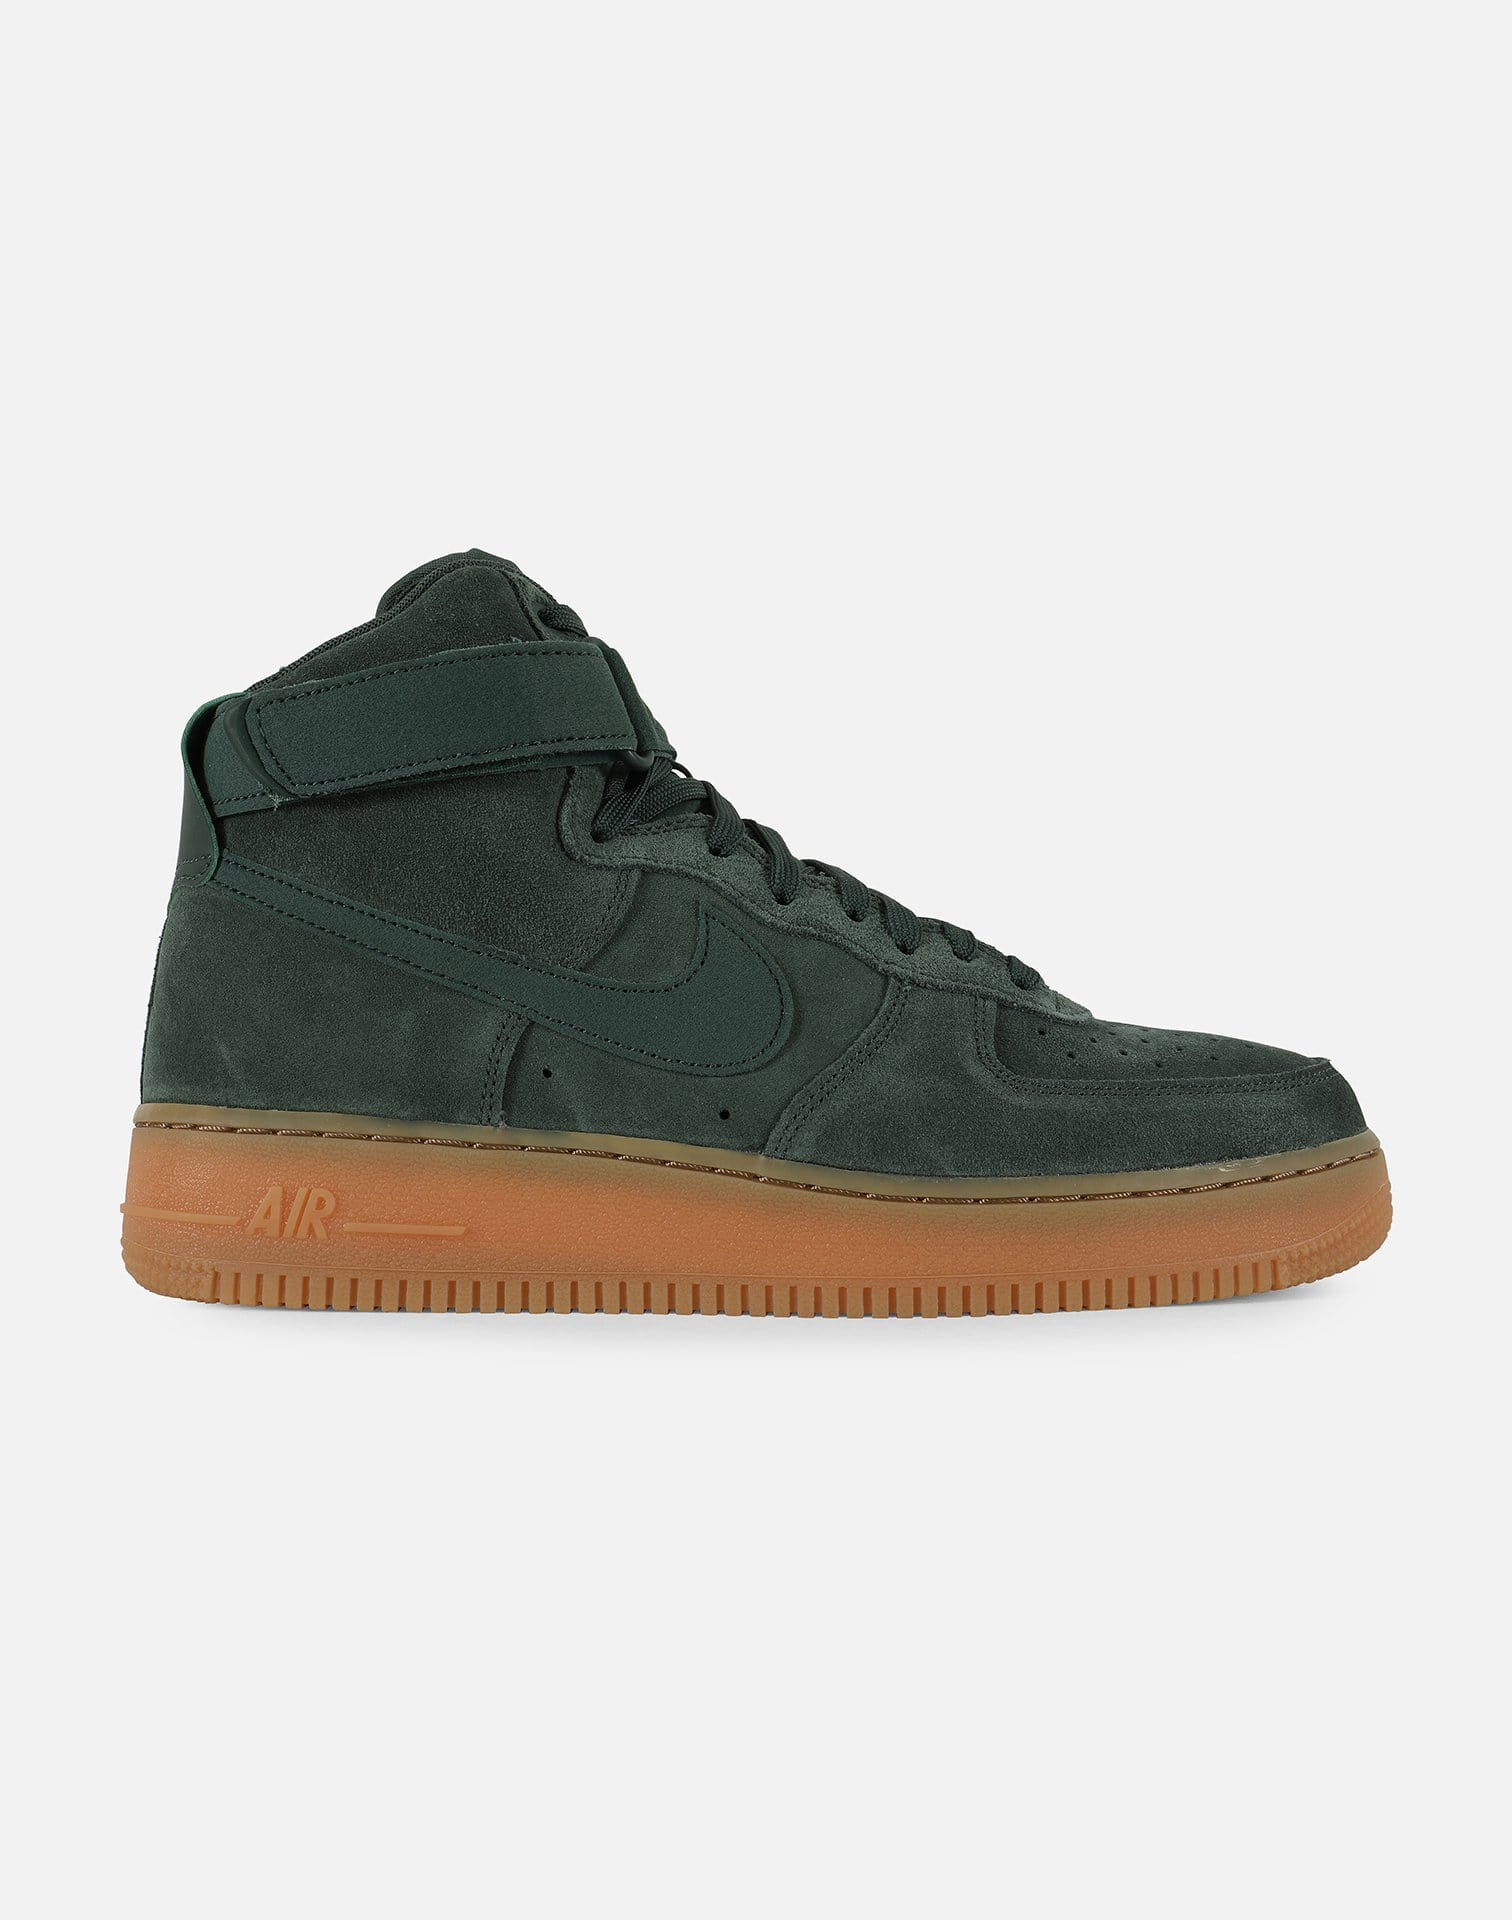 nike Men's Air Force 1 High '07 LV8 Suede